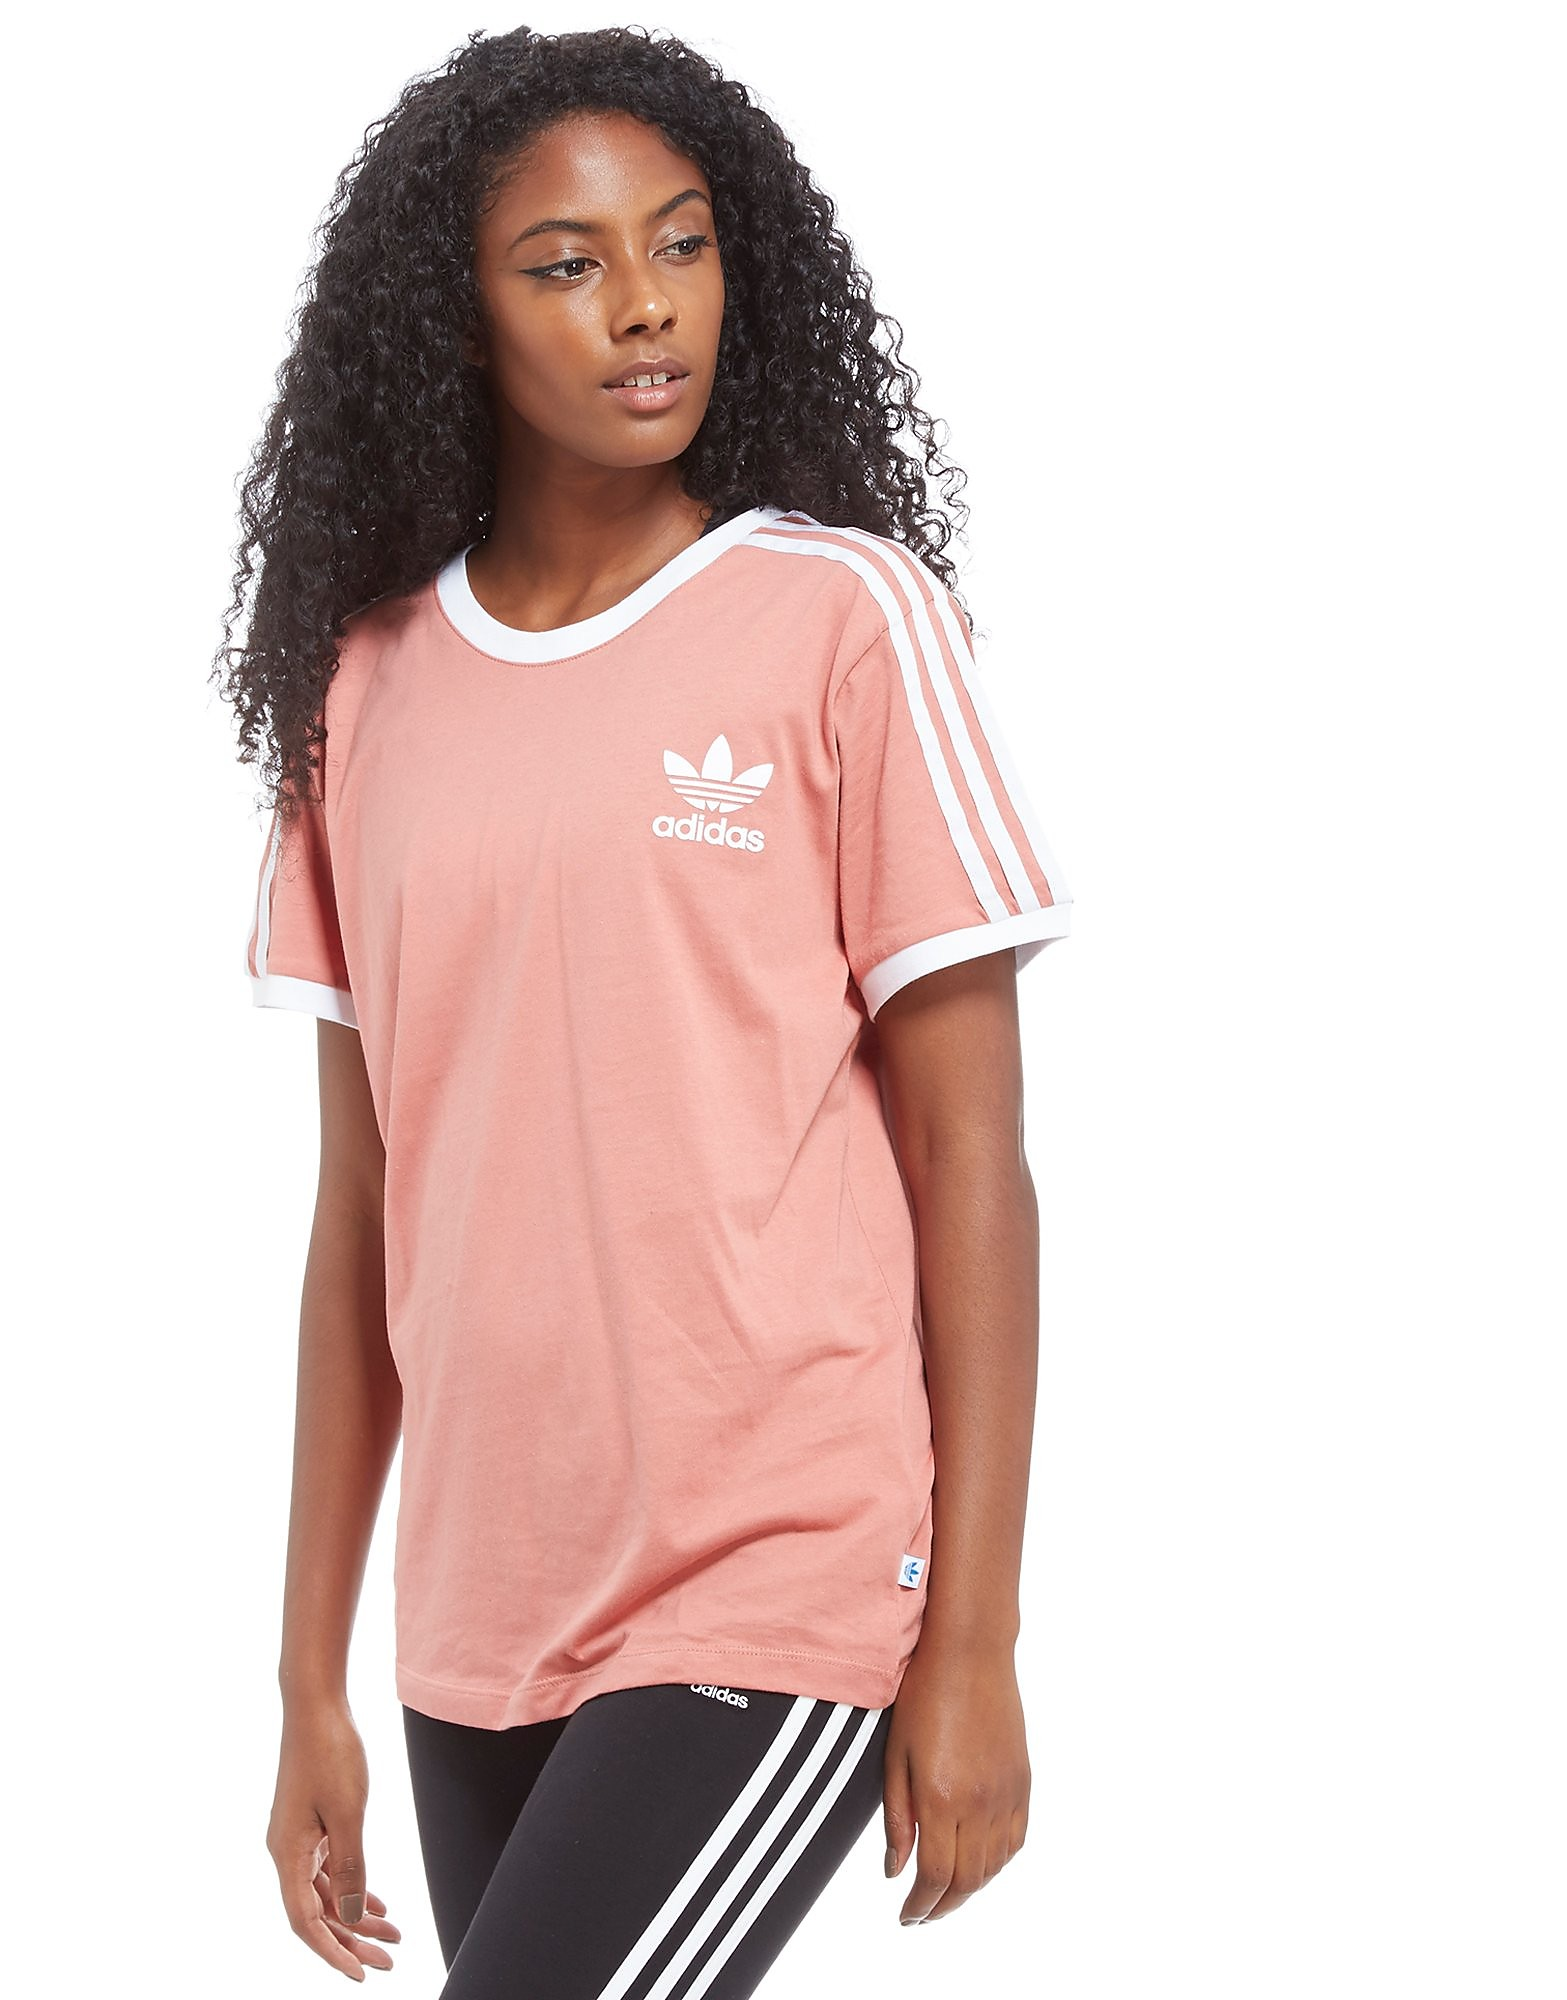 adidas Originals California T-Shirt Donna